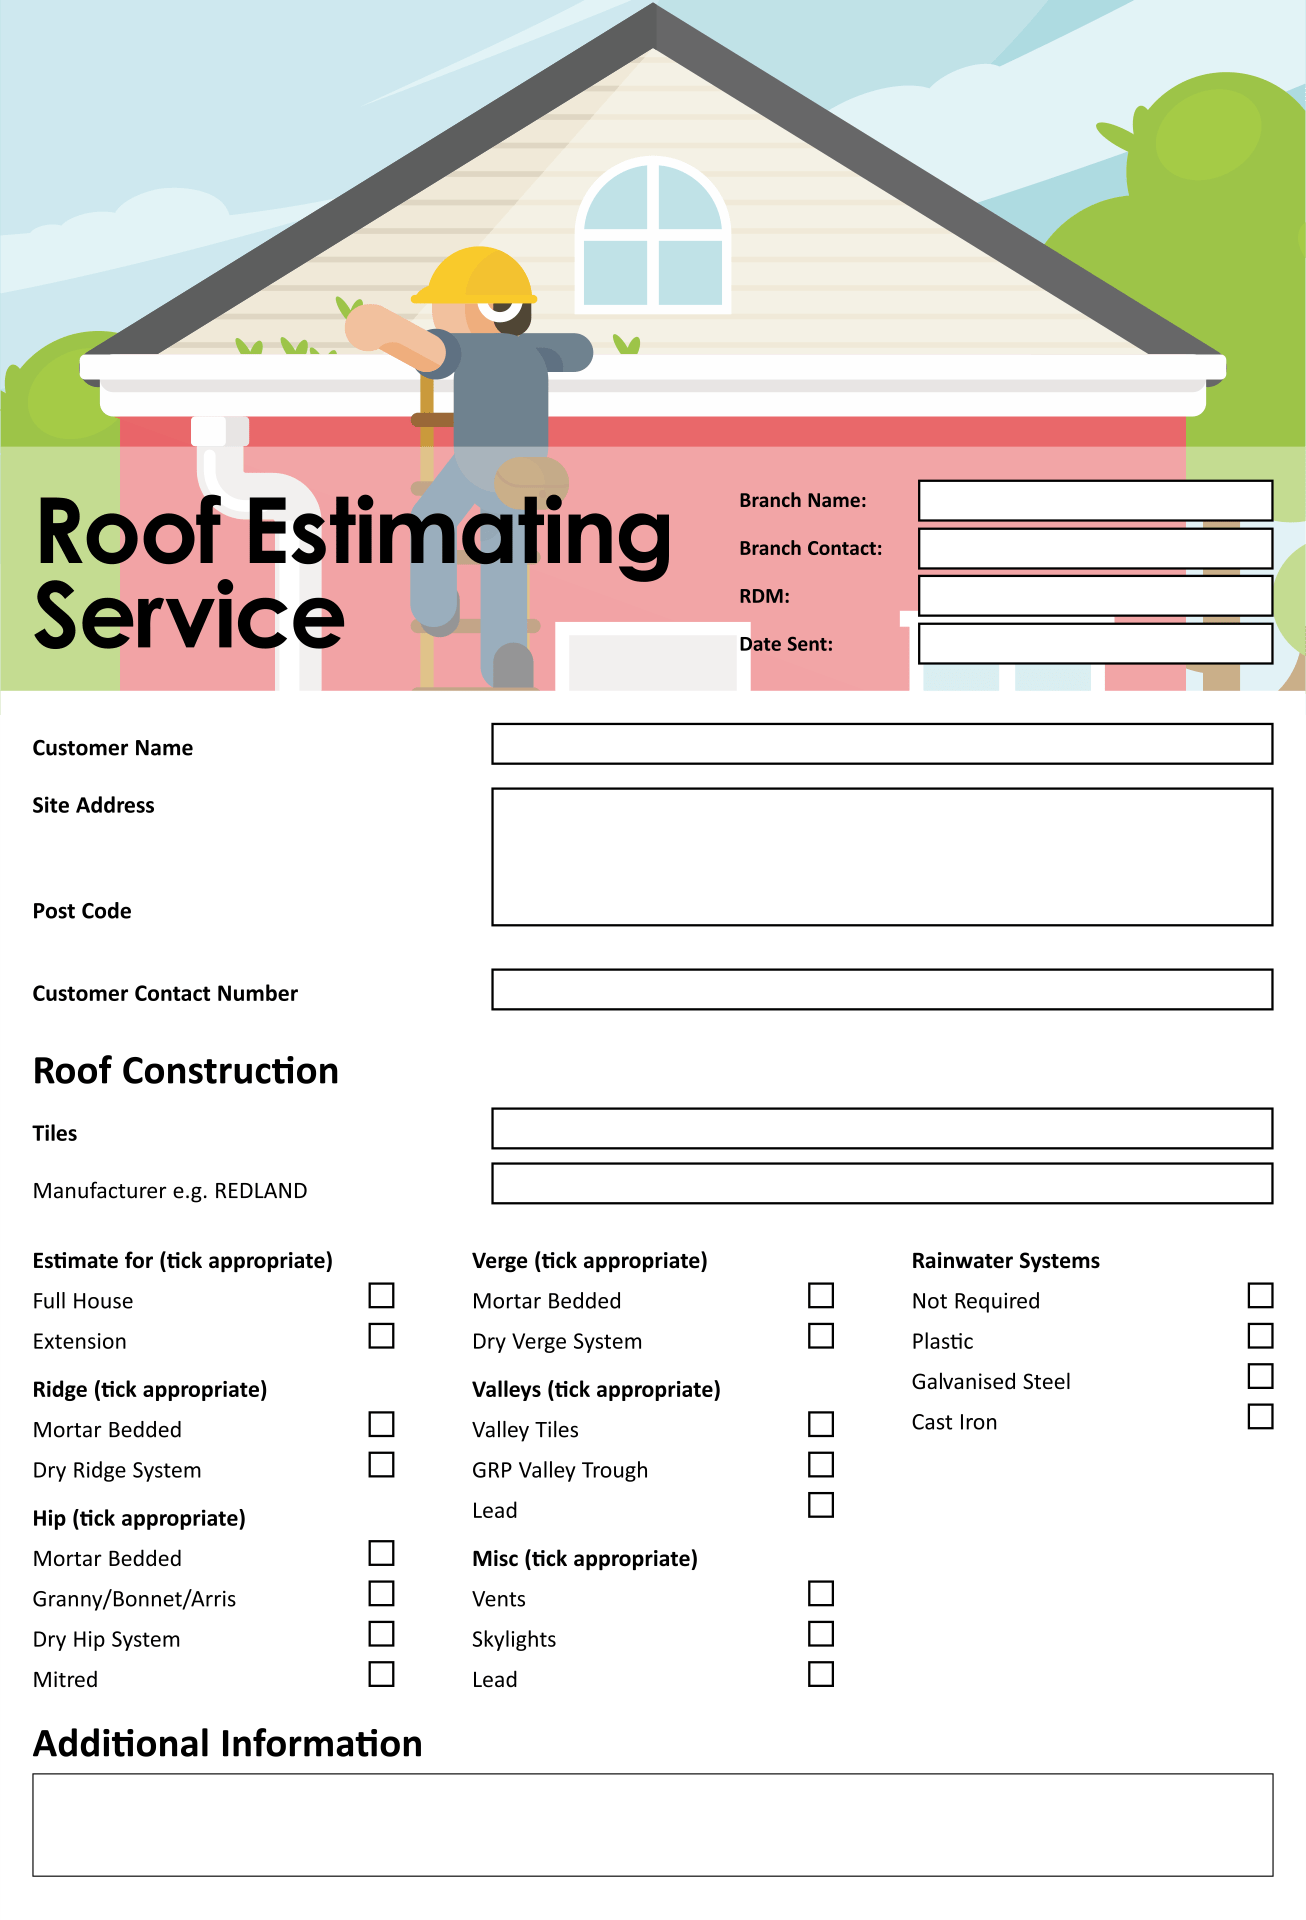 roofing invoice sample roofing invoice sample makemoney alex tk